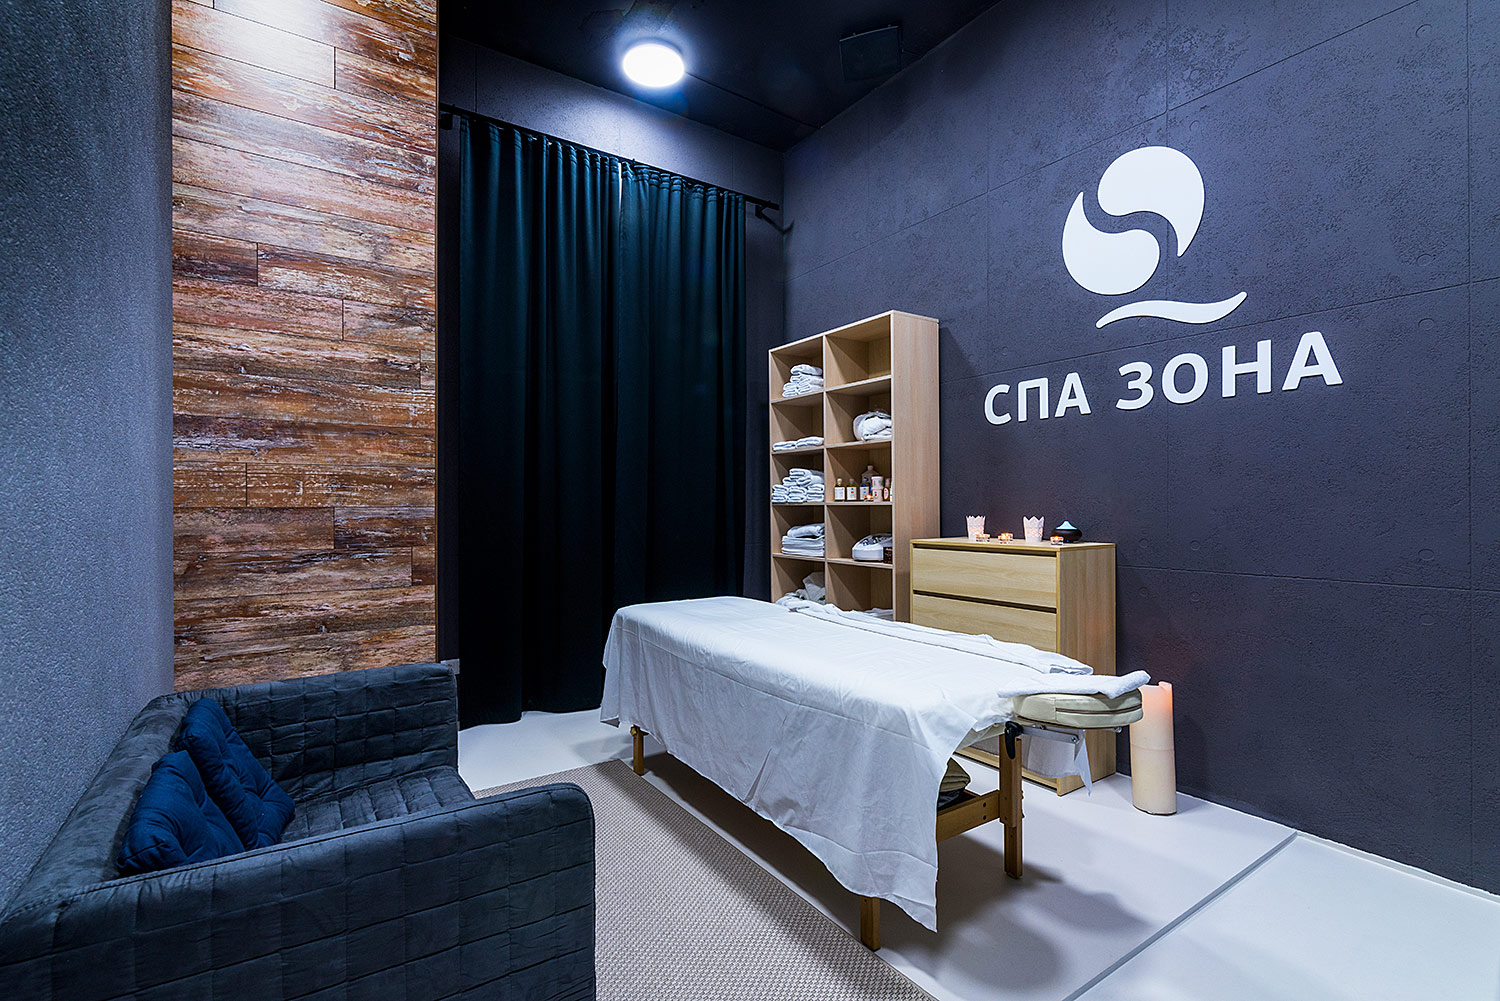 Branded SPA area in the SQLAB clinic. Acrylic white logo on the wall and acrylic letters.